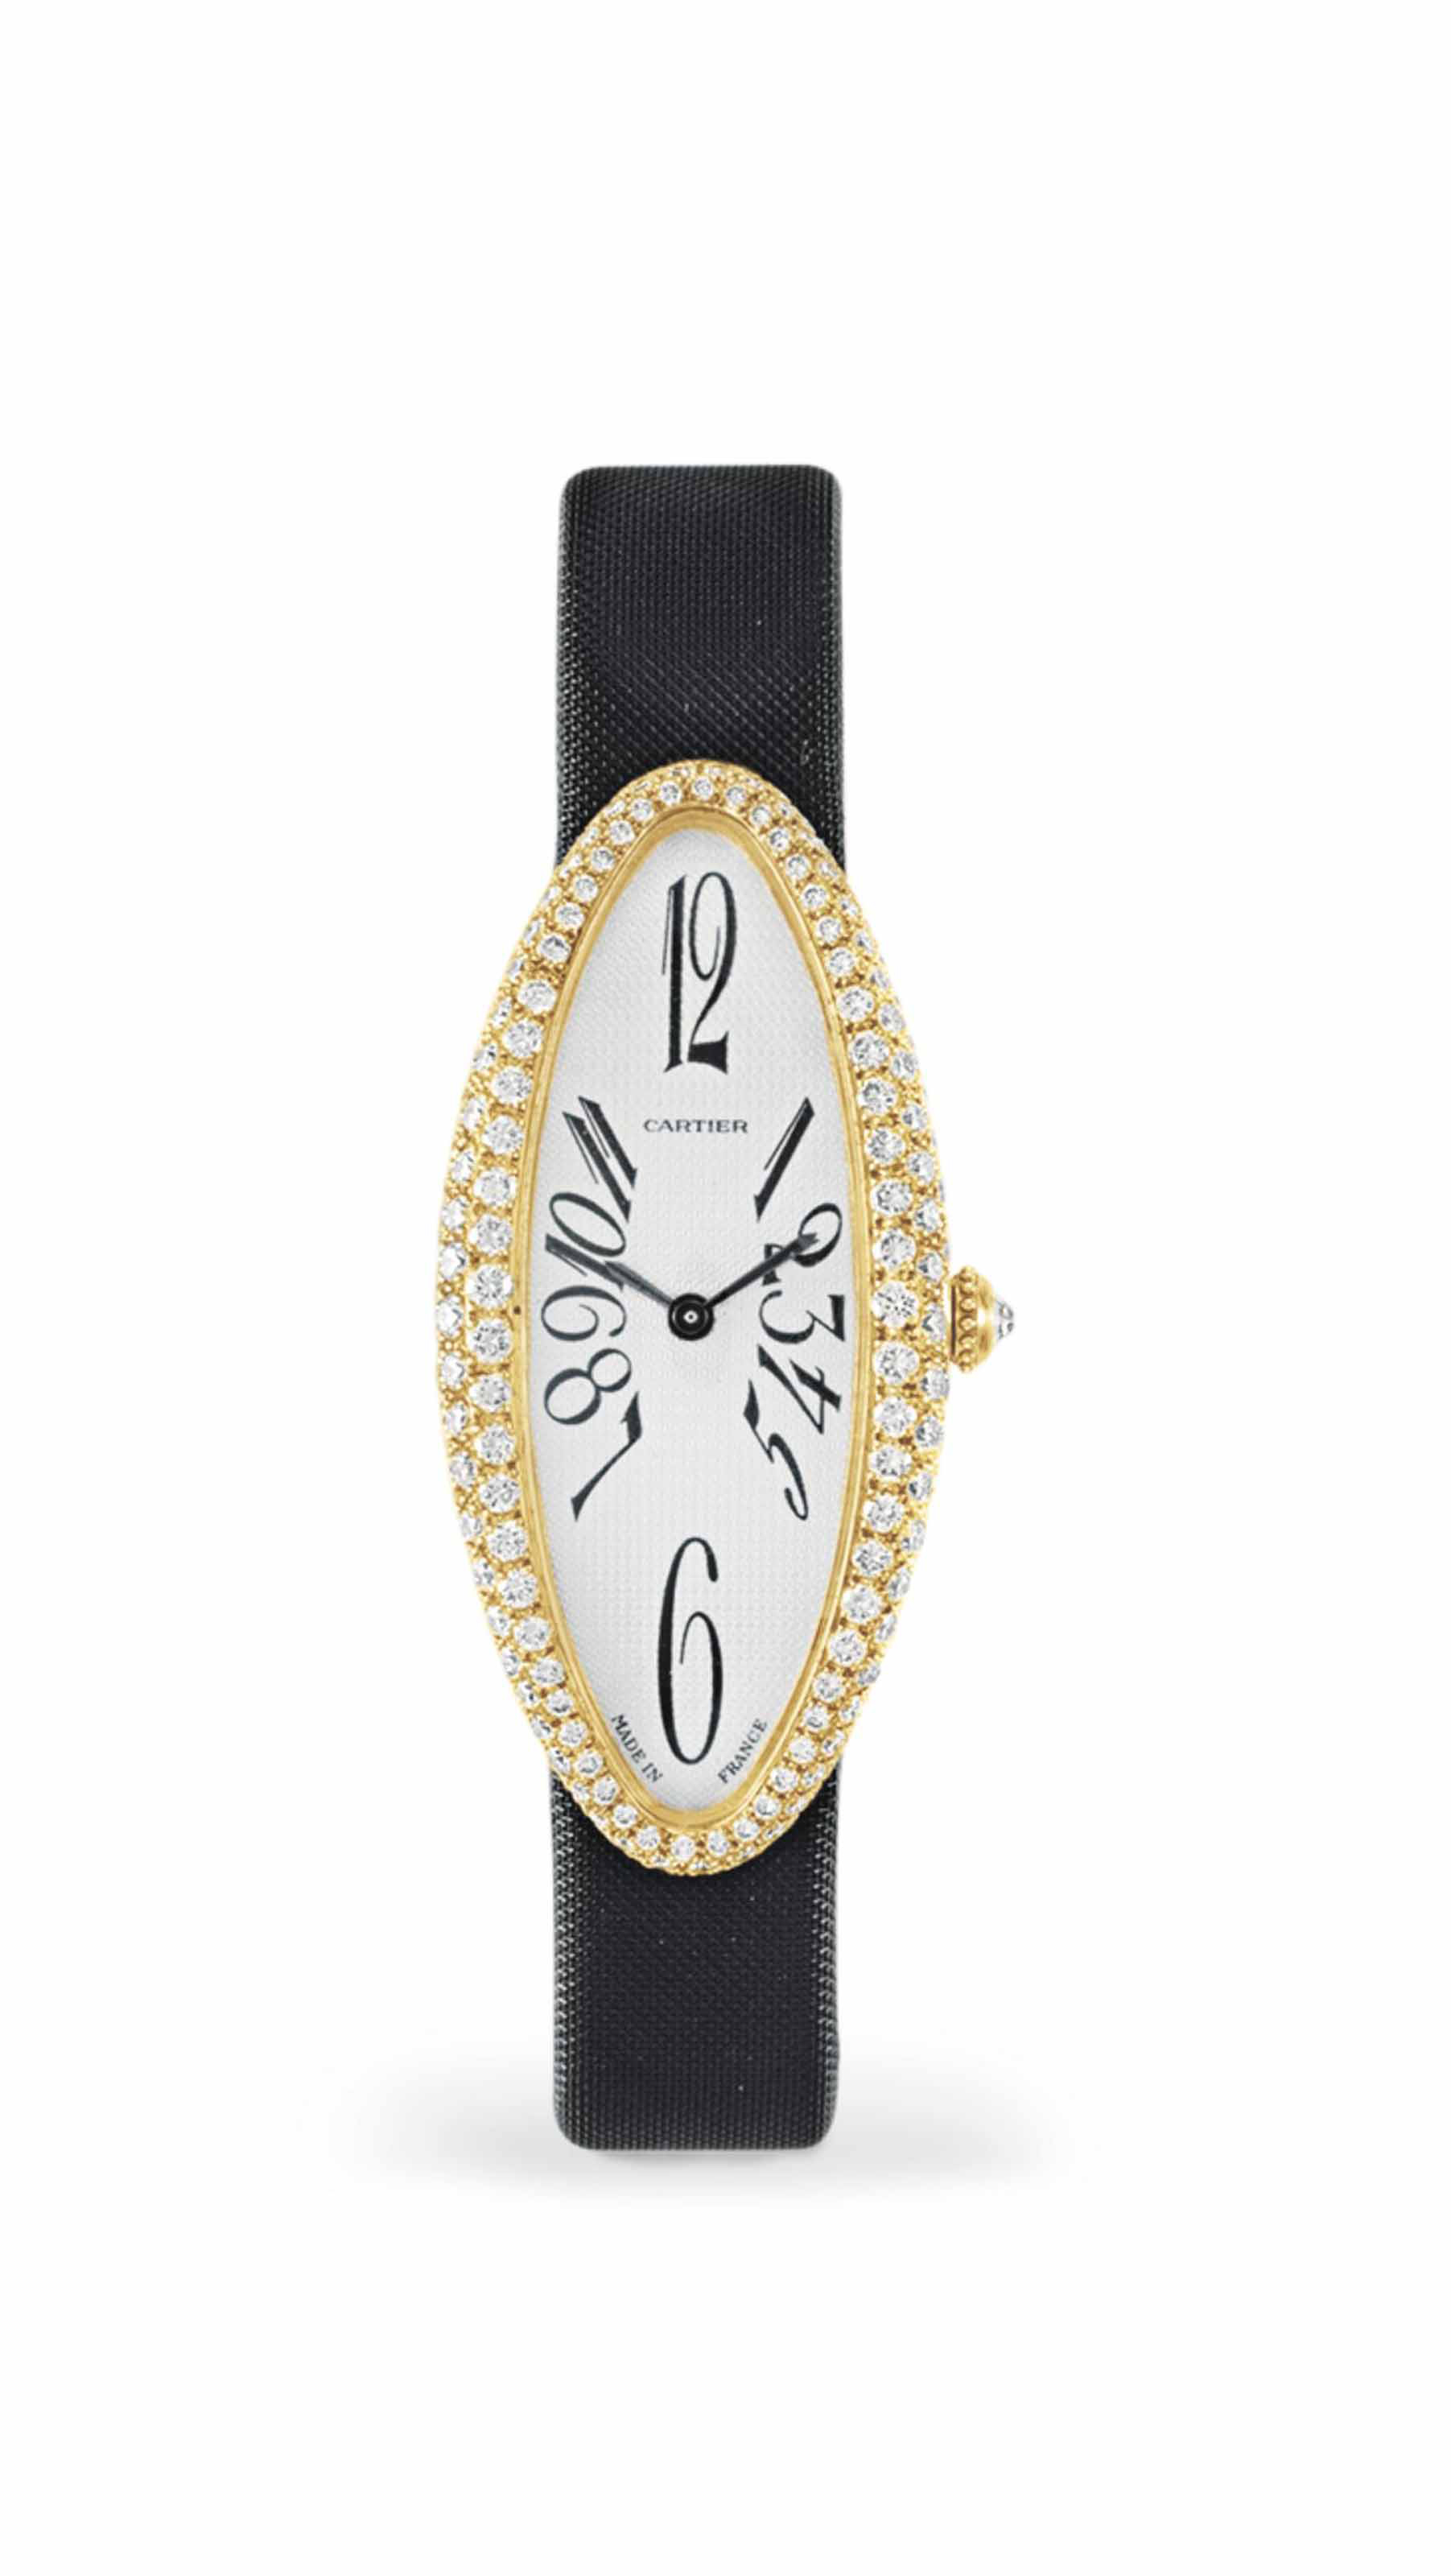 A Diamond And Gold Baignoire Allongee Wristwatch By Cartier